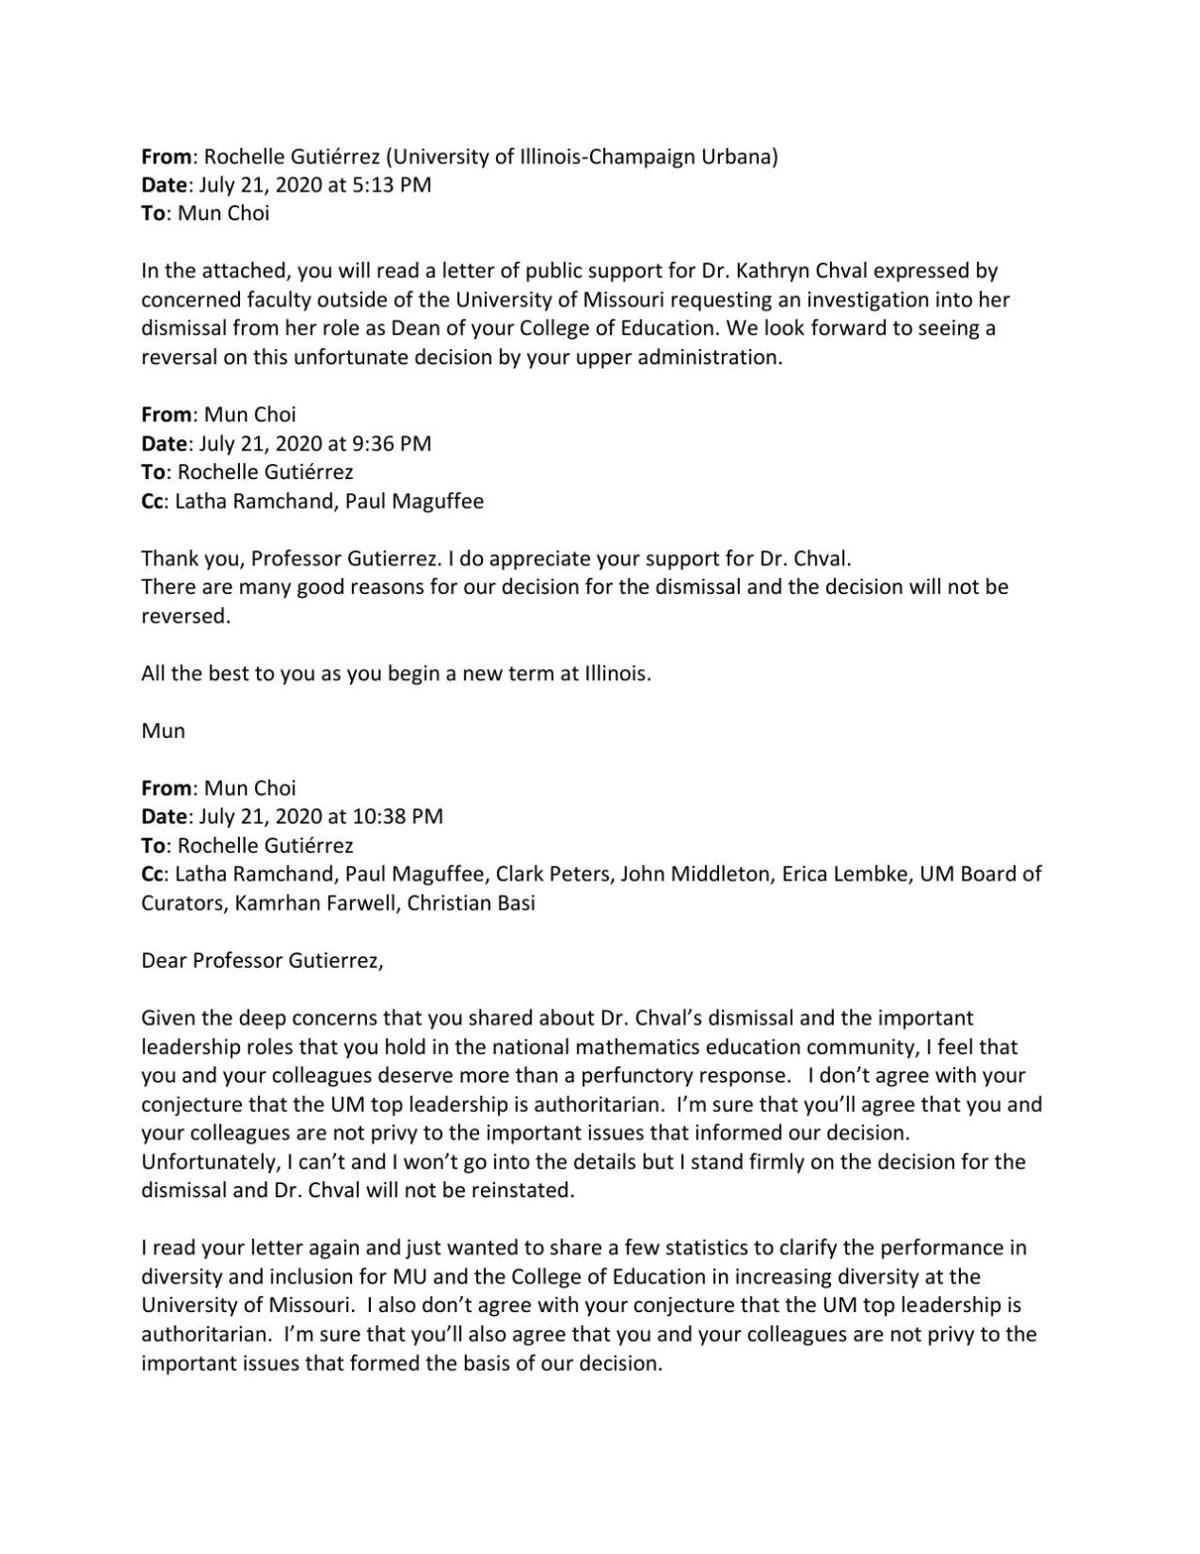 Email exchange between math education professor and Mun Choi